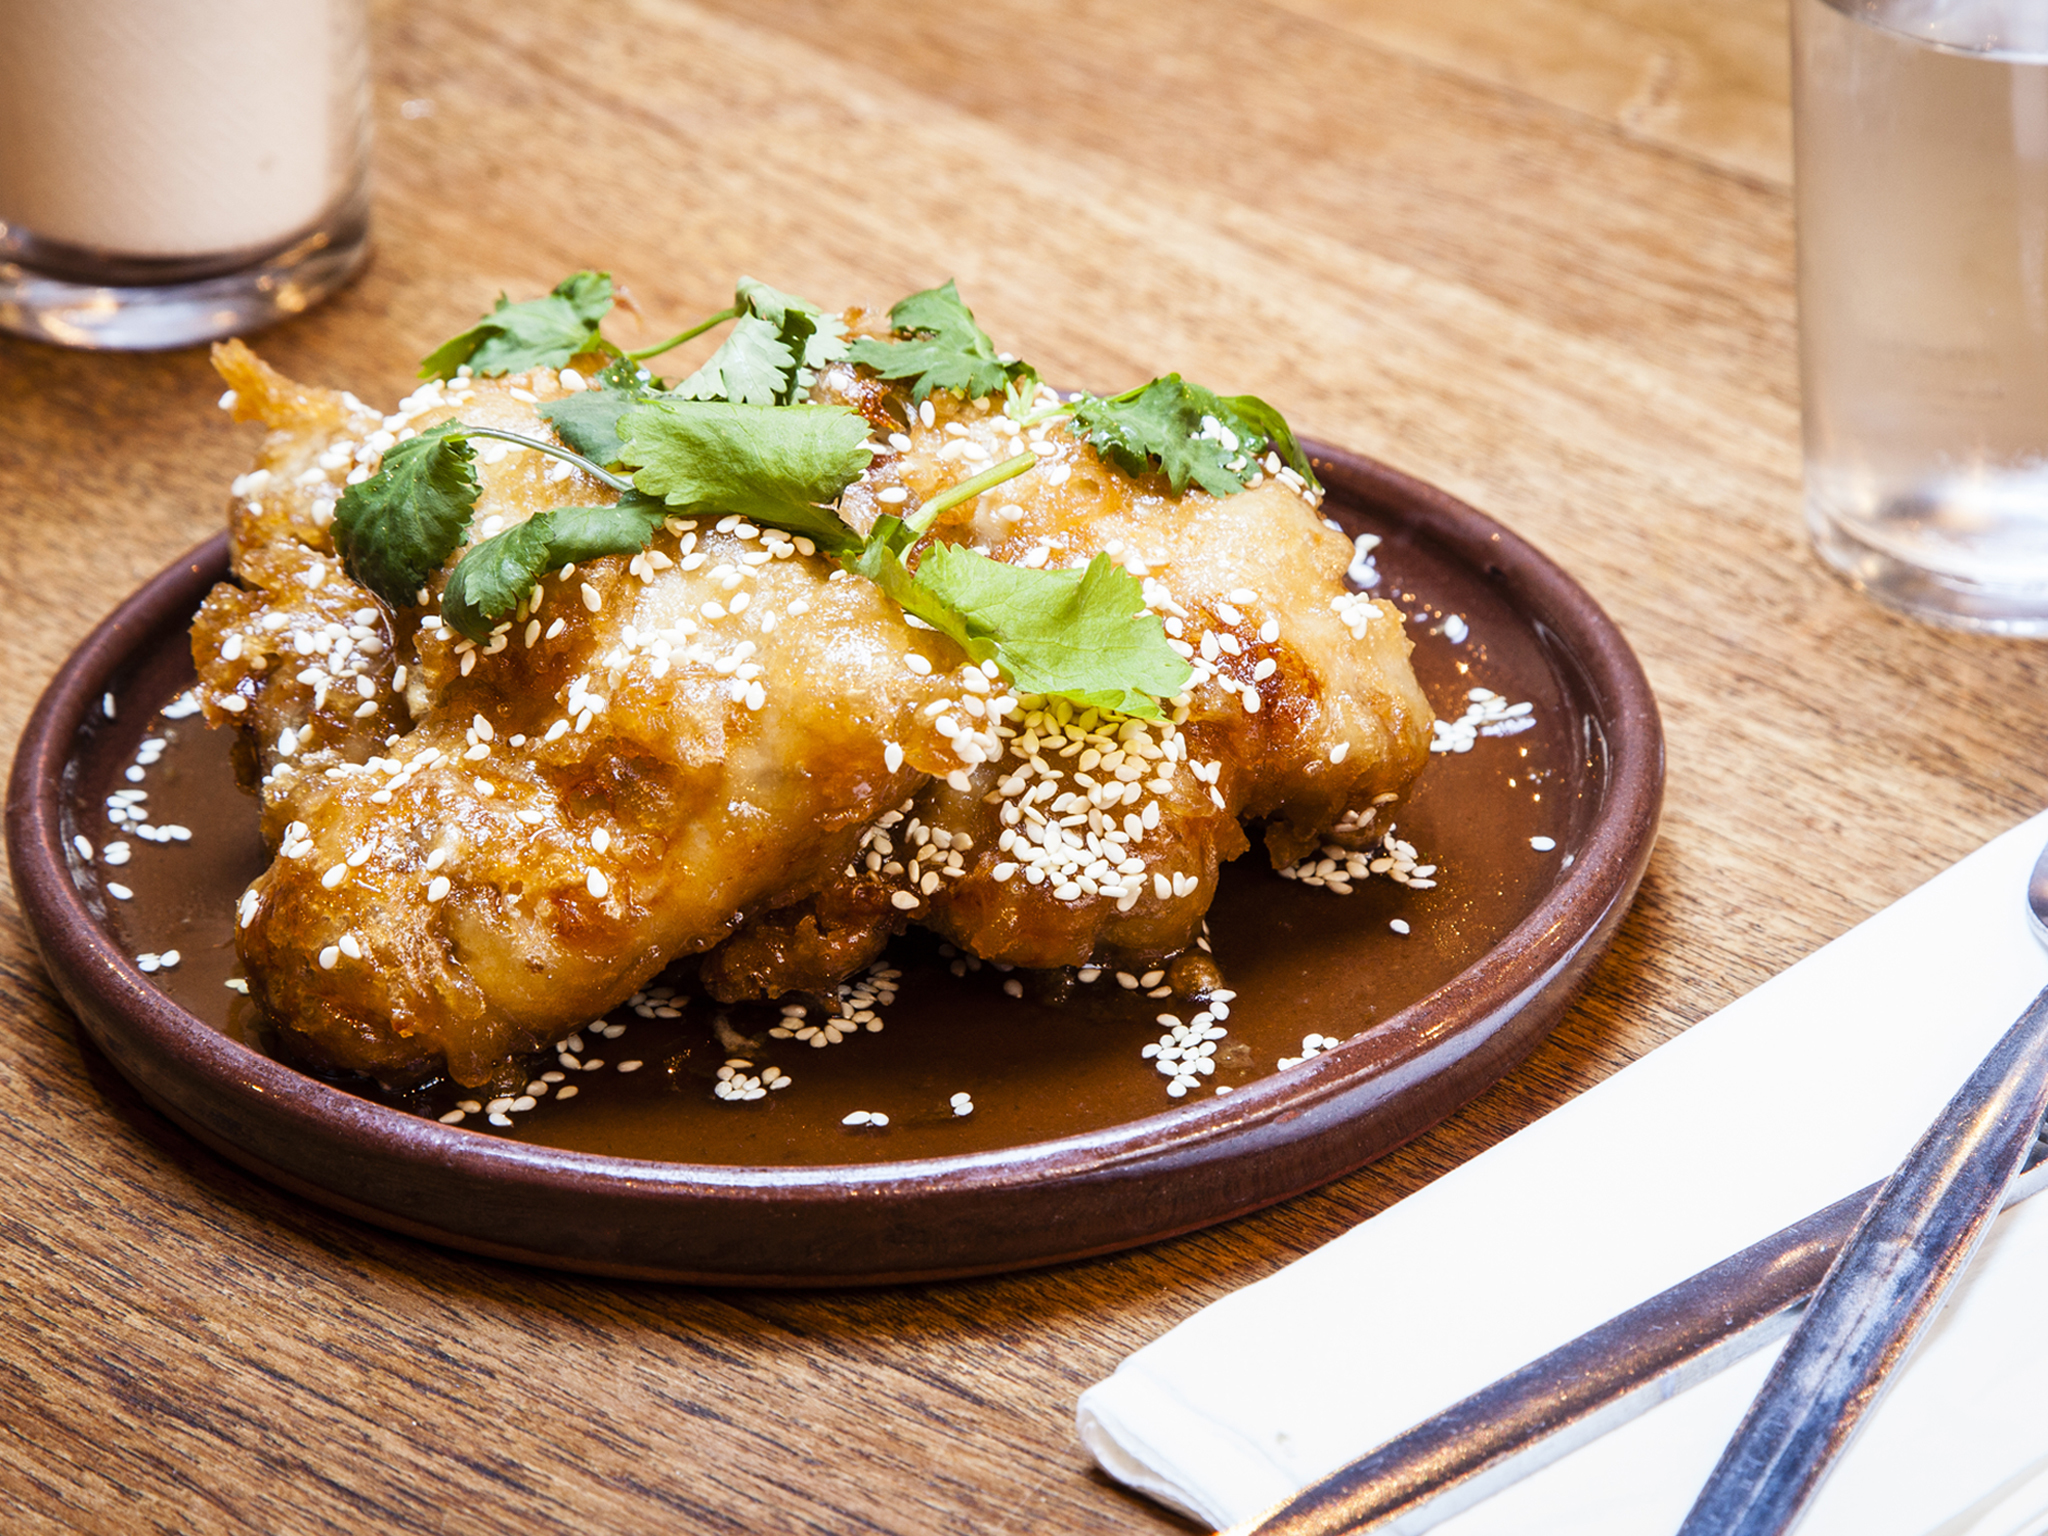 best dishes in london, smoking goat, fish sauce wings